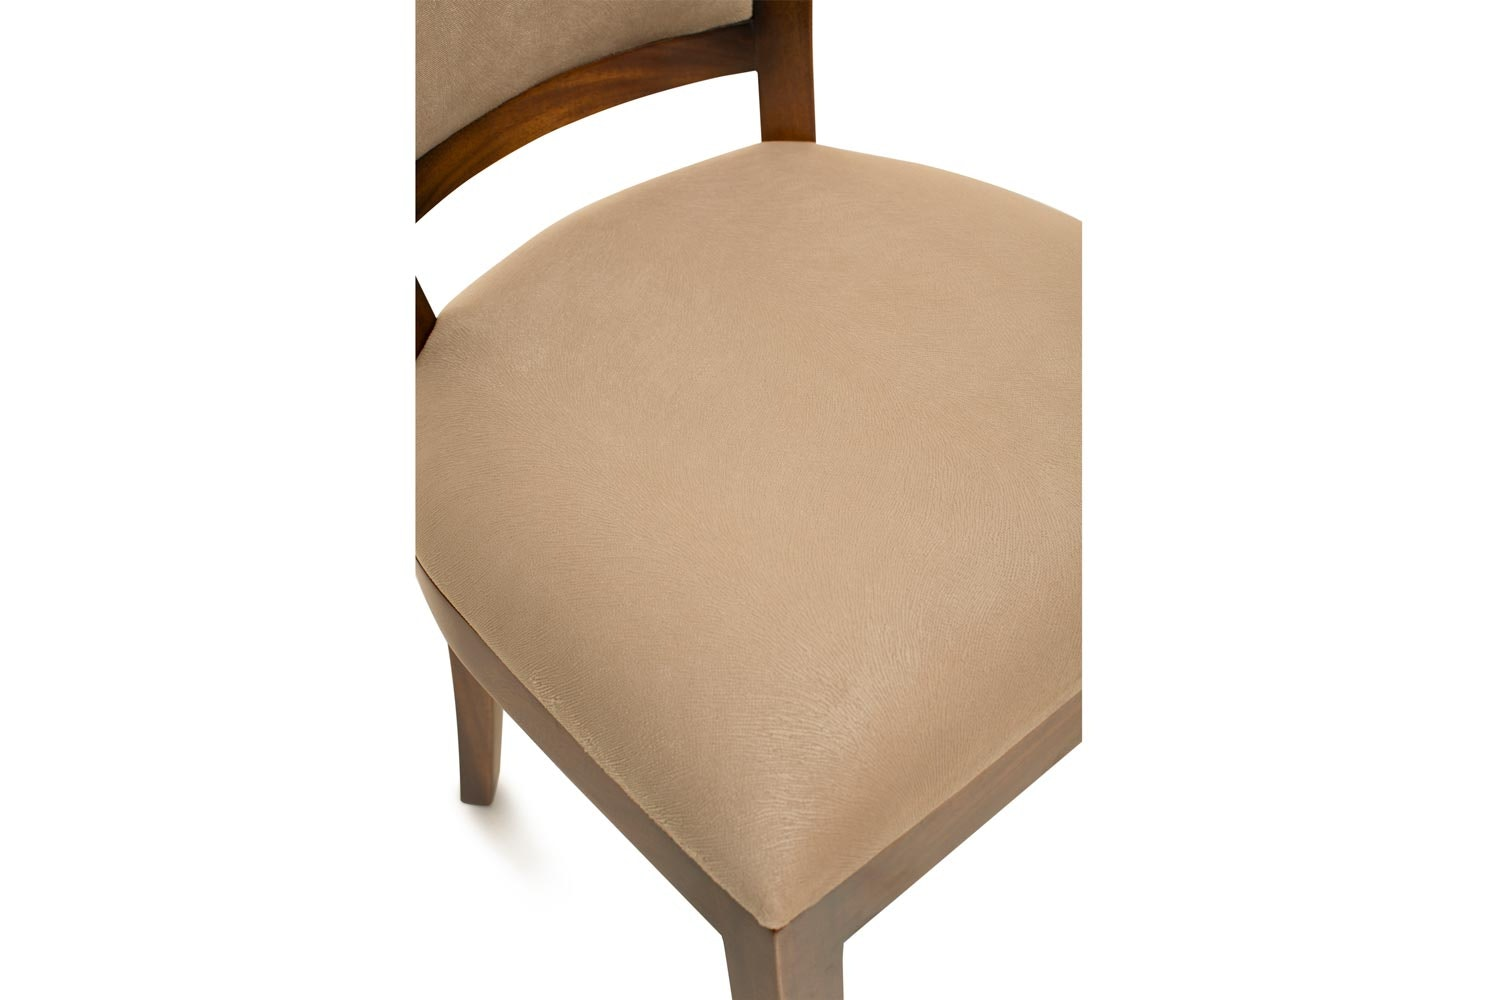 Barouge Bedroom Chair